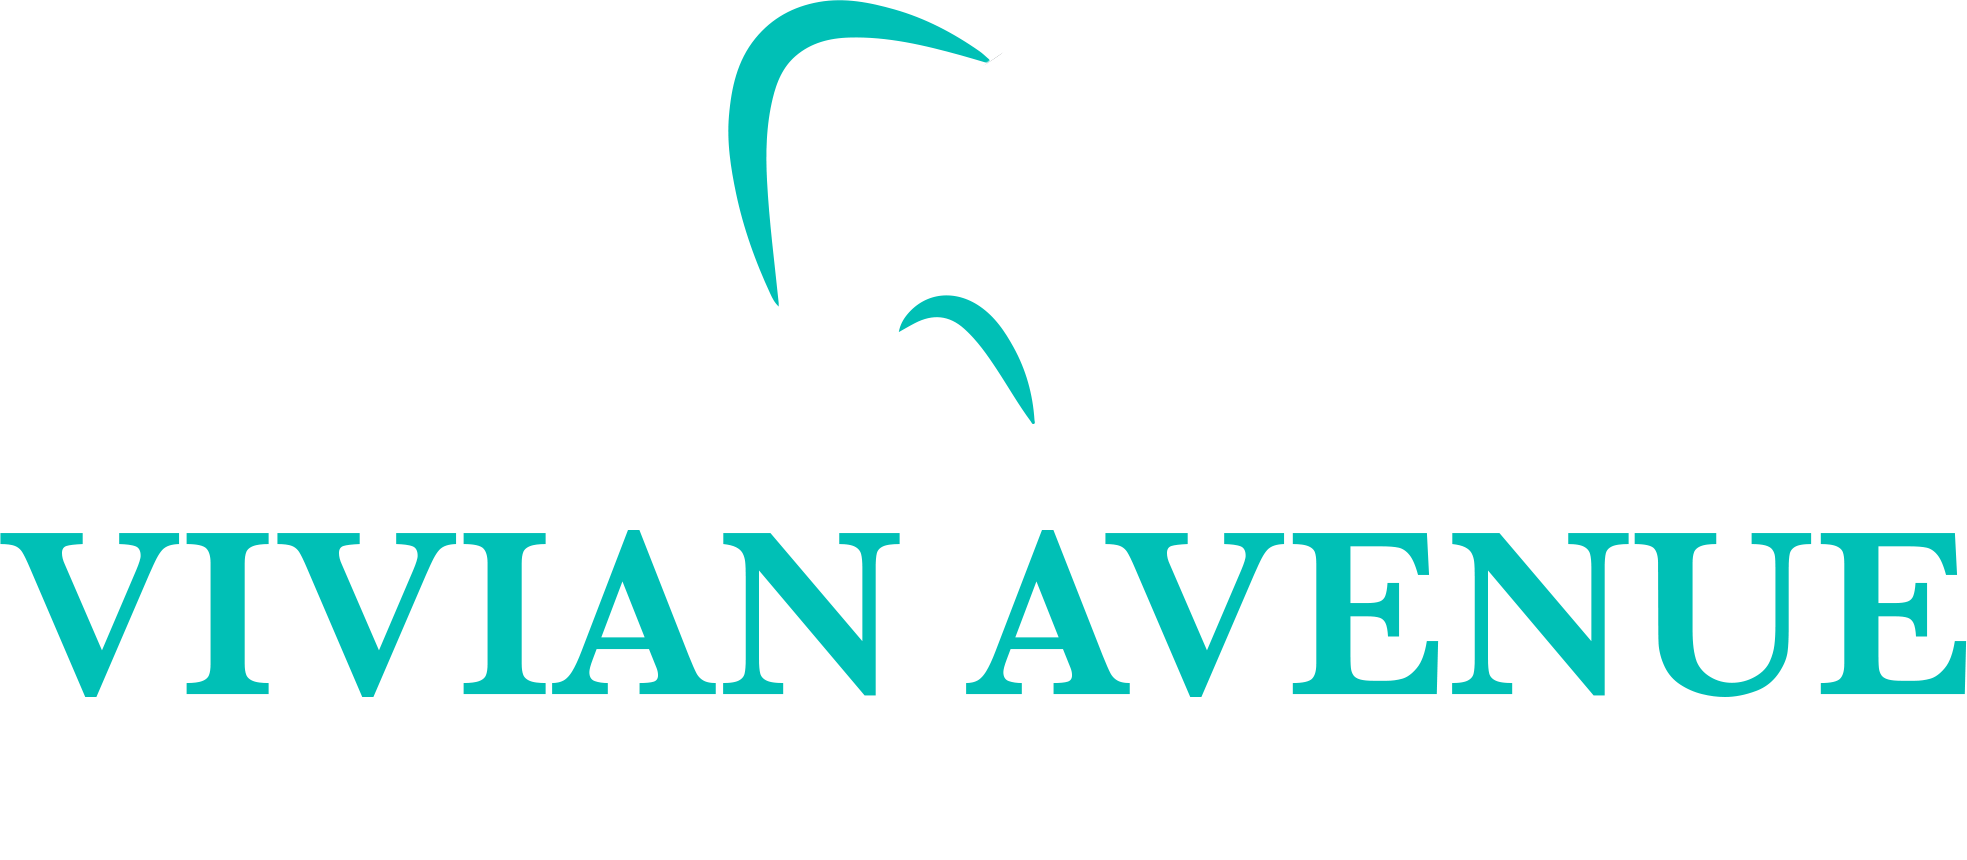 Vivian Avenue Dental Clinic